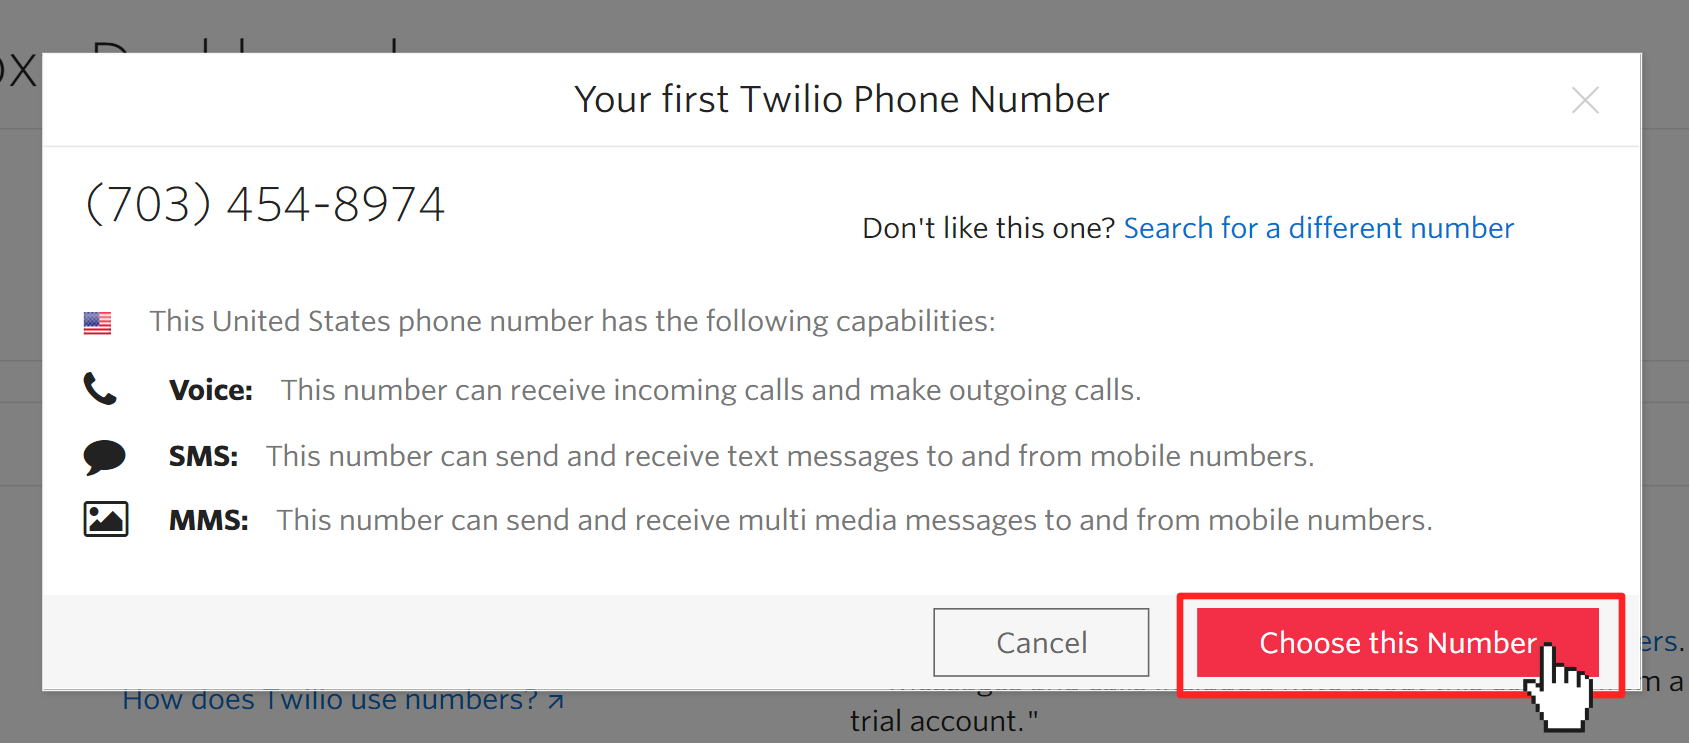 """Modal in Twilio Console proposing a phone number. Pointer clicking on button """"Choose this Number"""""""